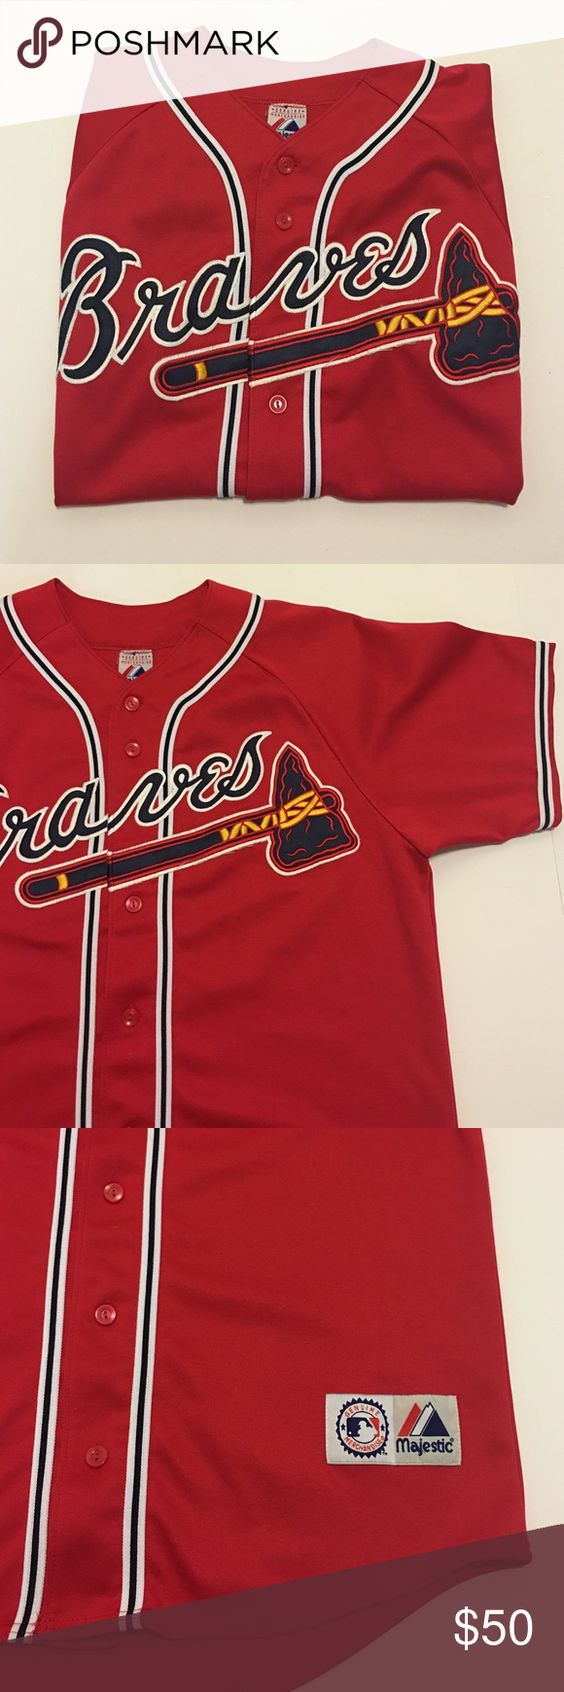 Atlanta Braves MLB Red Majestic Baseball Jersey Atlanta braves MLB baseball majestic jersey in red. Great condition. Size large. Majestic Shirts Casual Button Down Shirts